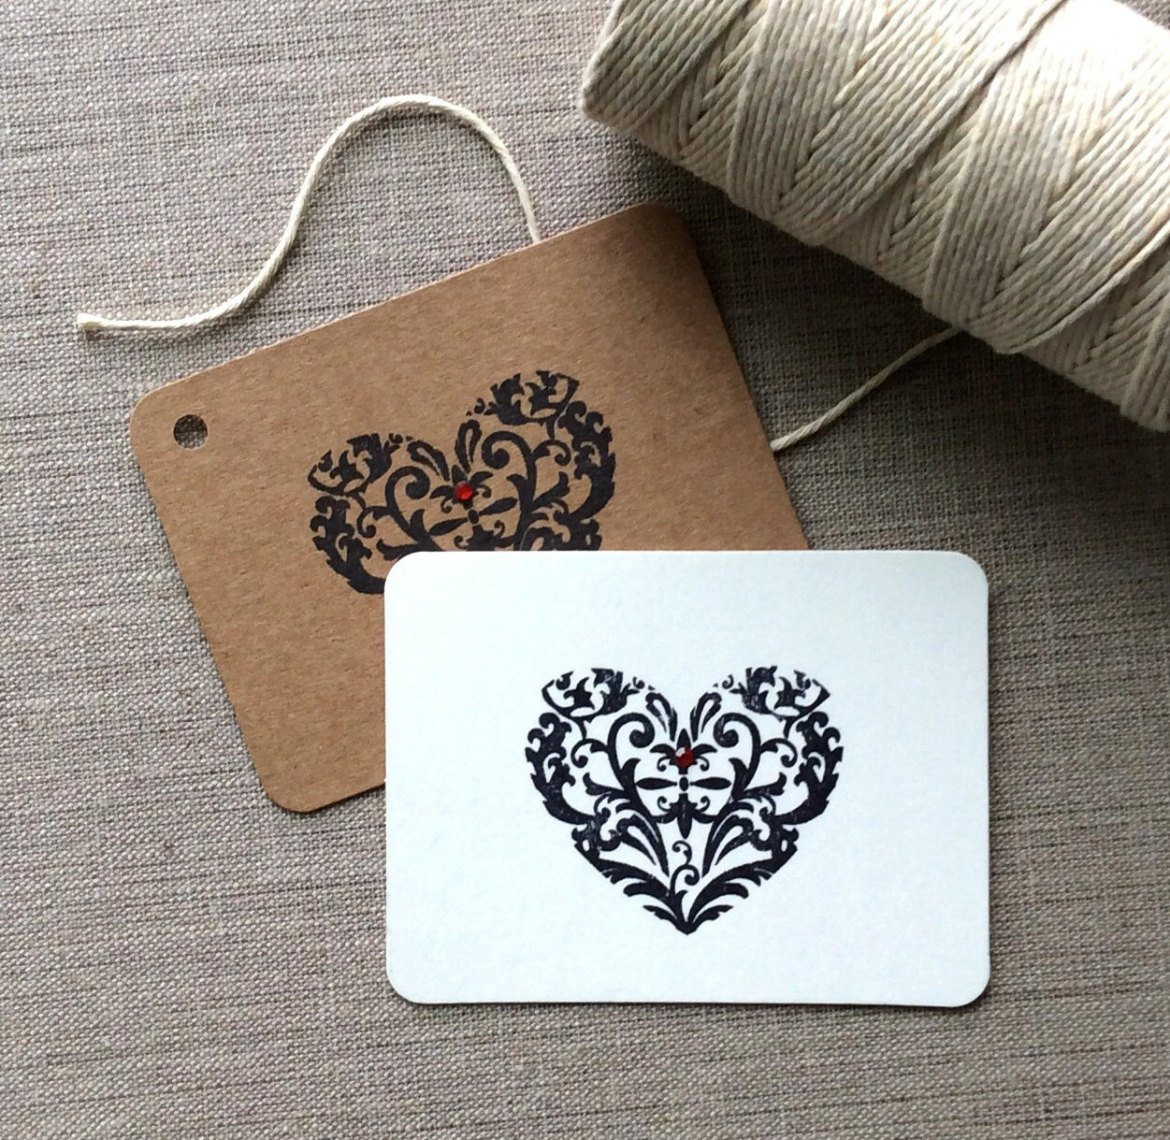 Vintage Inspired Favor Tags   by Beth and Olivia